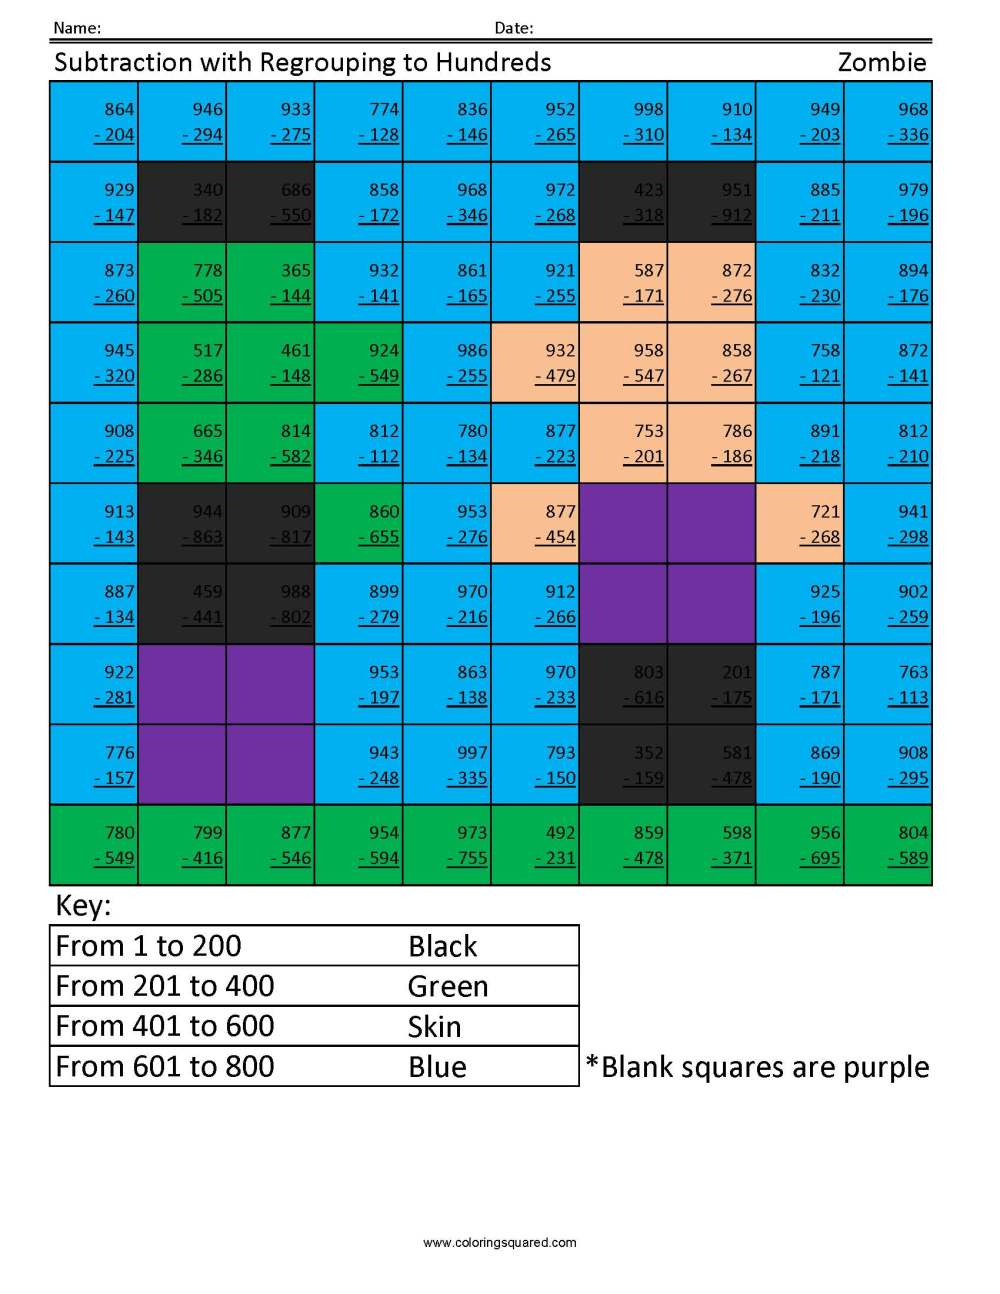 medium resolution of Subtraction with Regrouping- Zombie - Coloring Squared